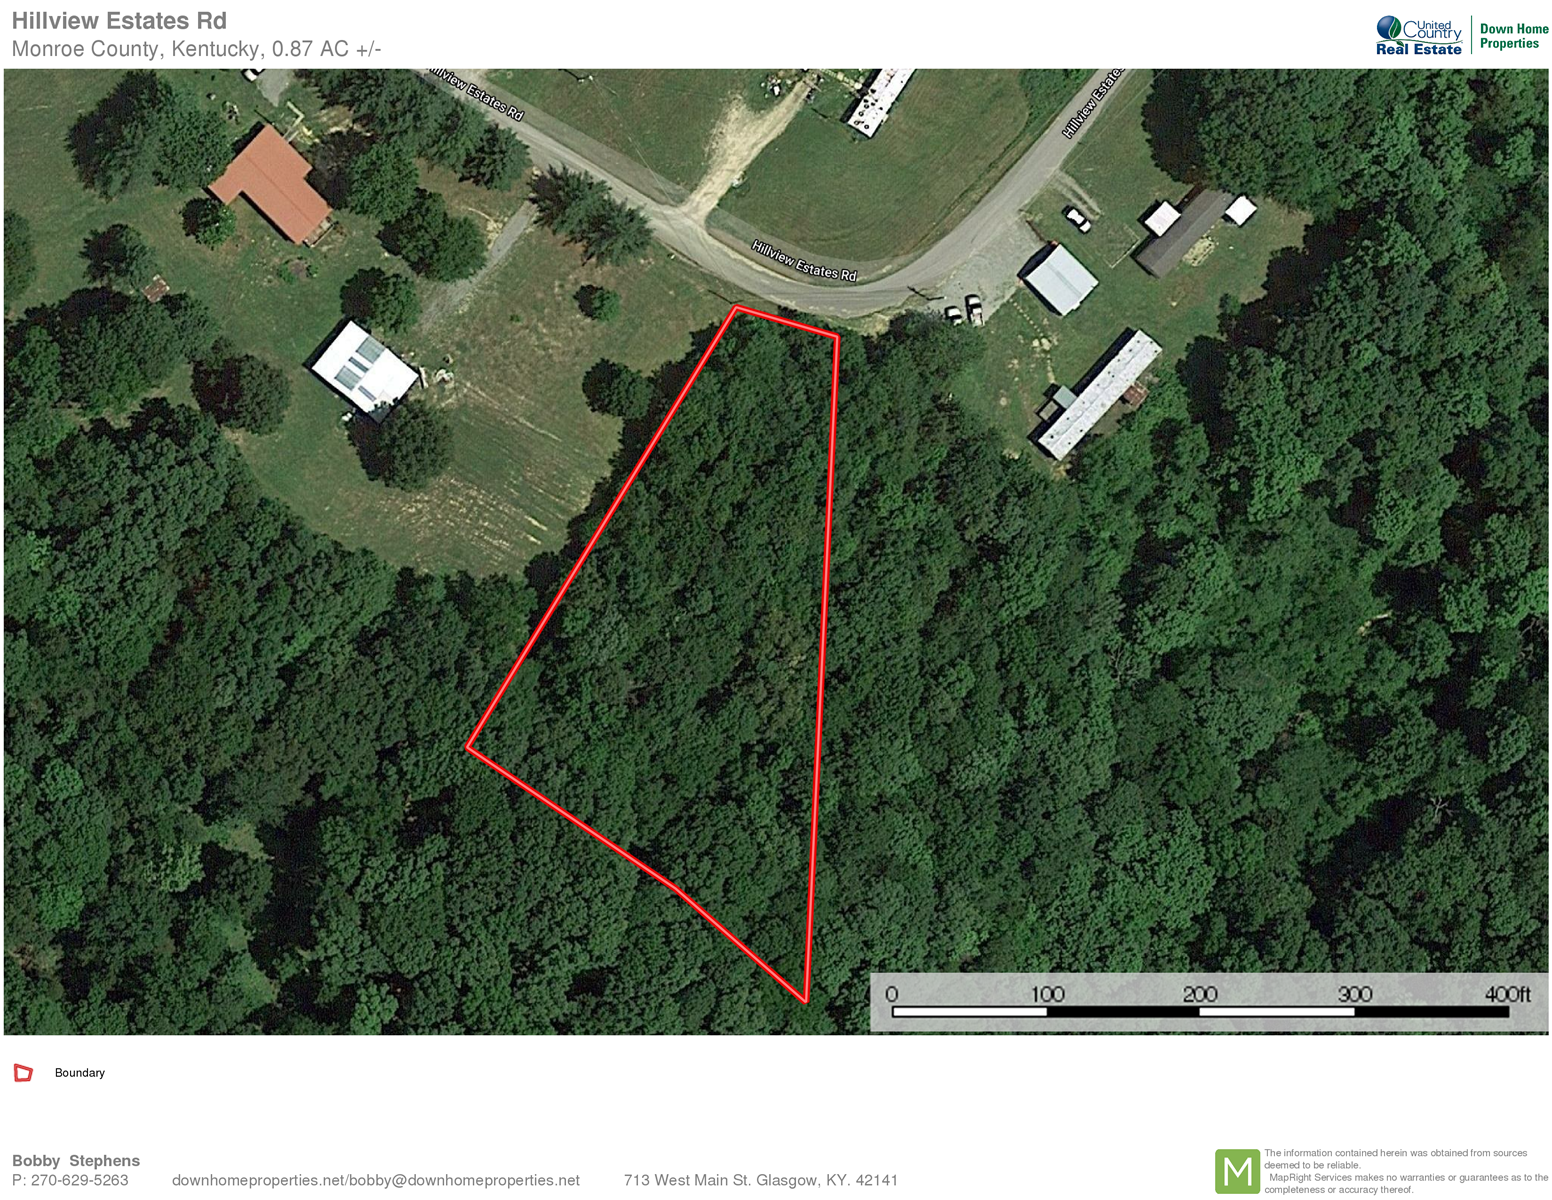 Hillview Estates Road 3/4 Acre